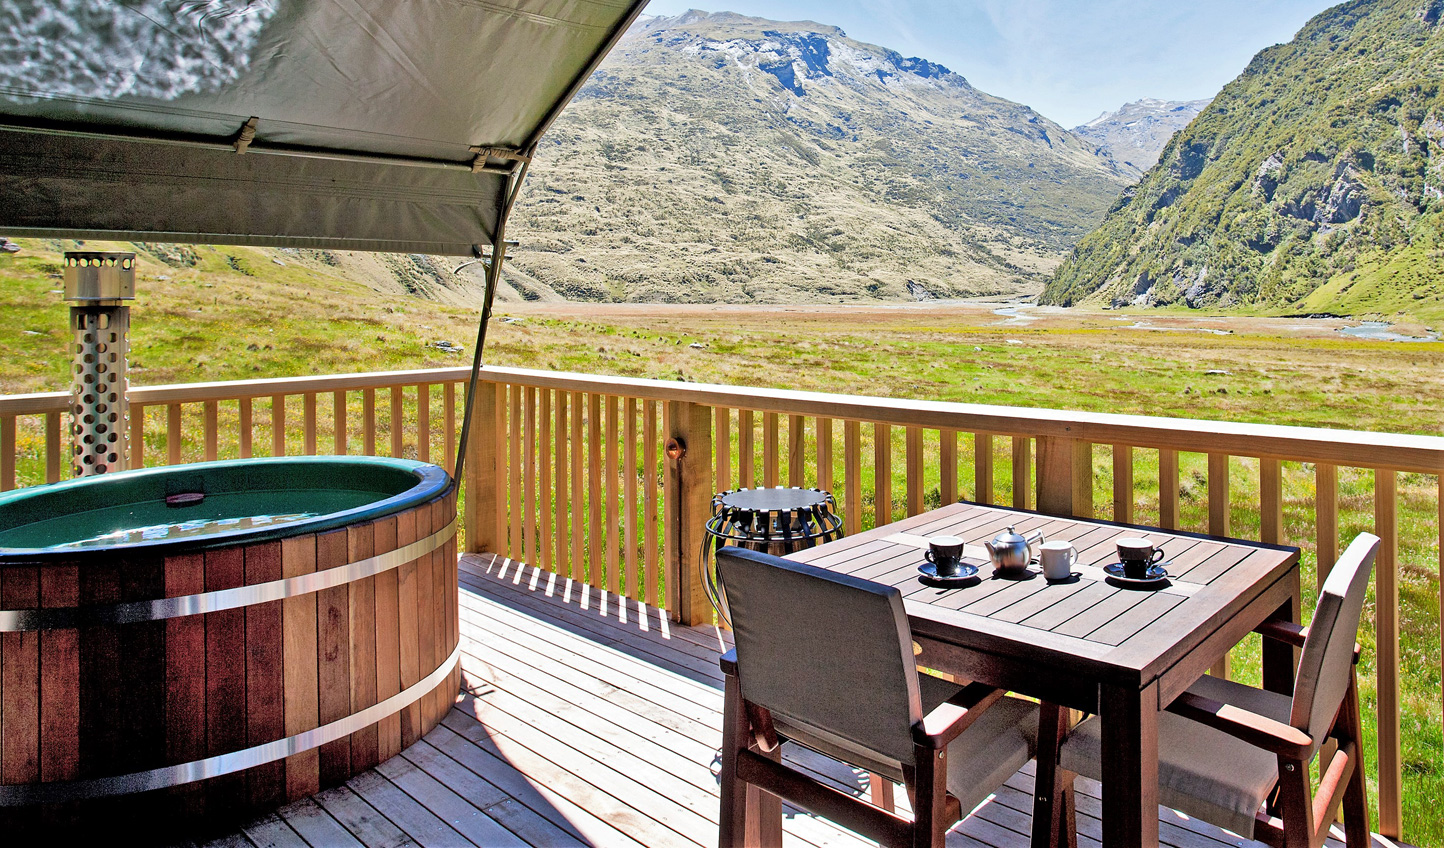 Relax after a day on the bike with a soak in your private hot tub